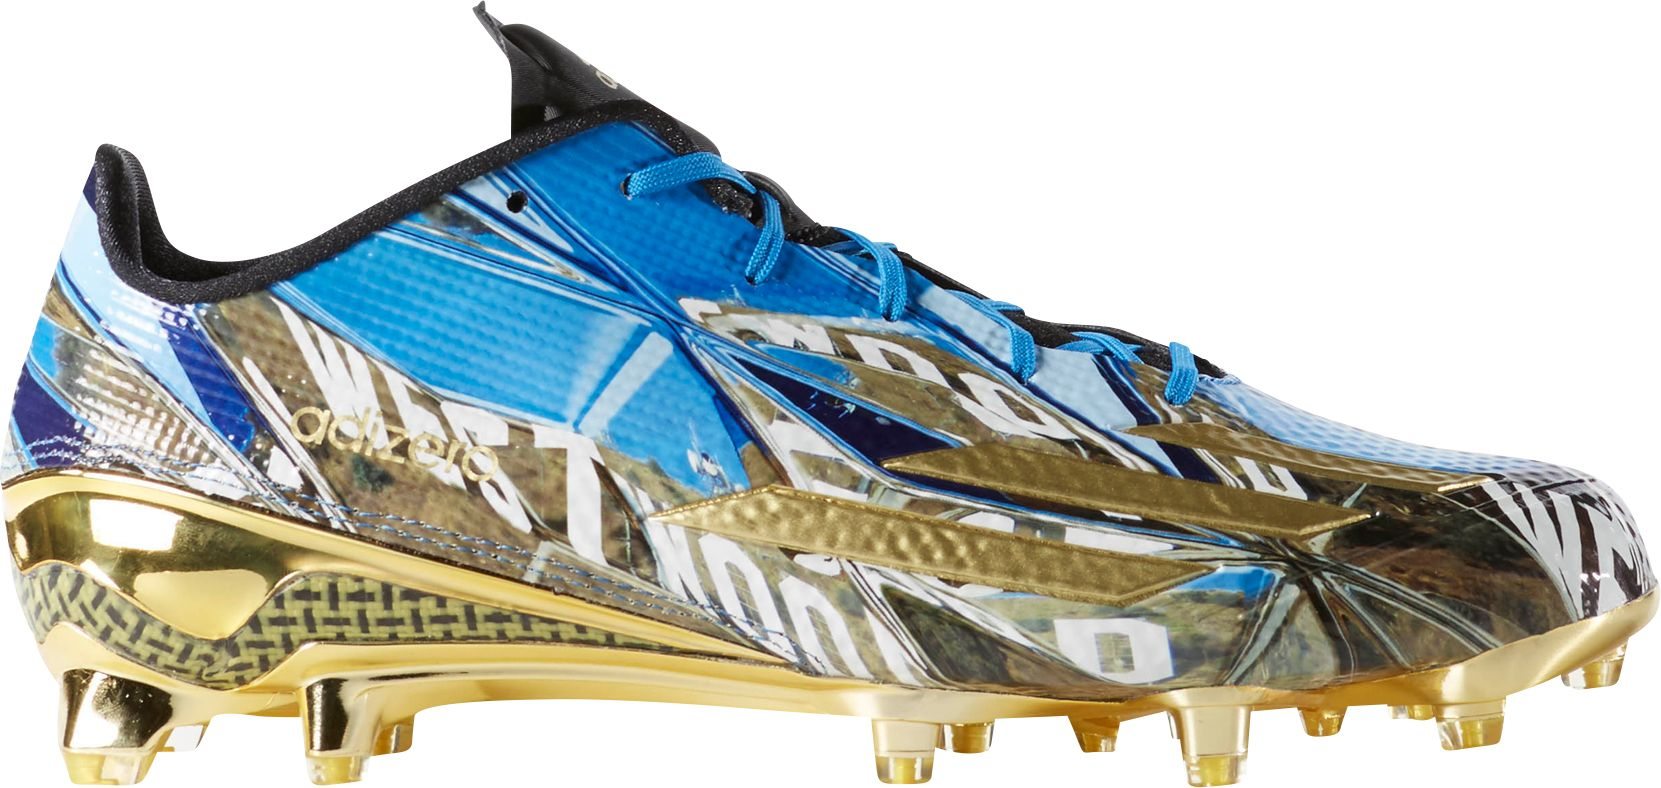 Adidas Football Cleats to Get Enhanced Acceleration!